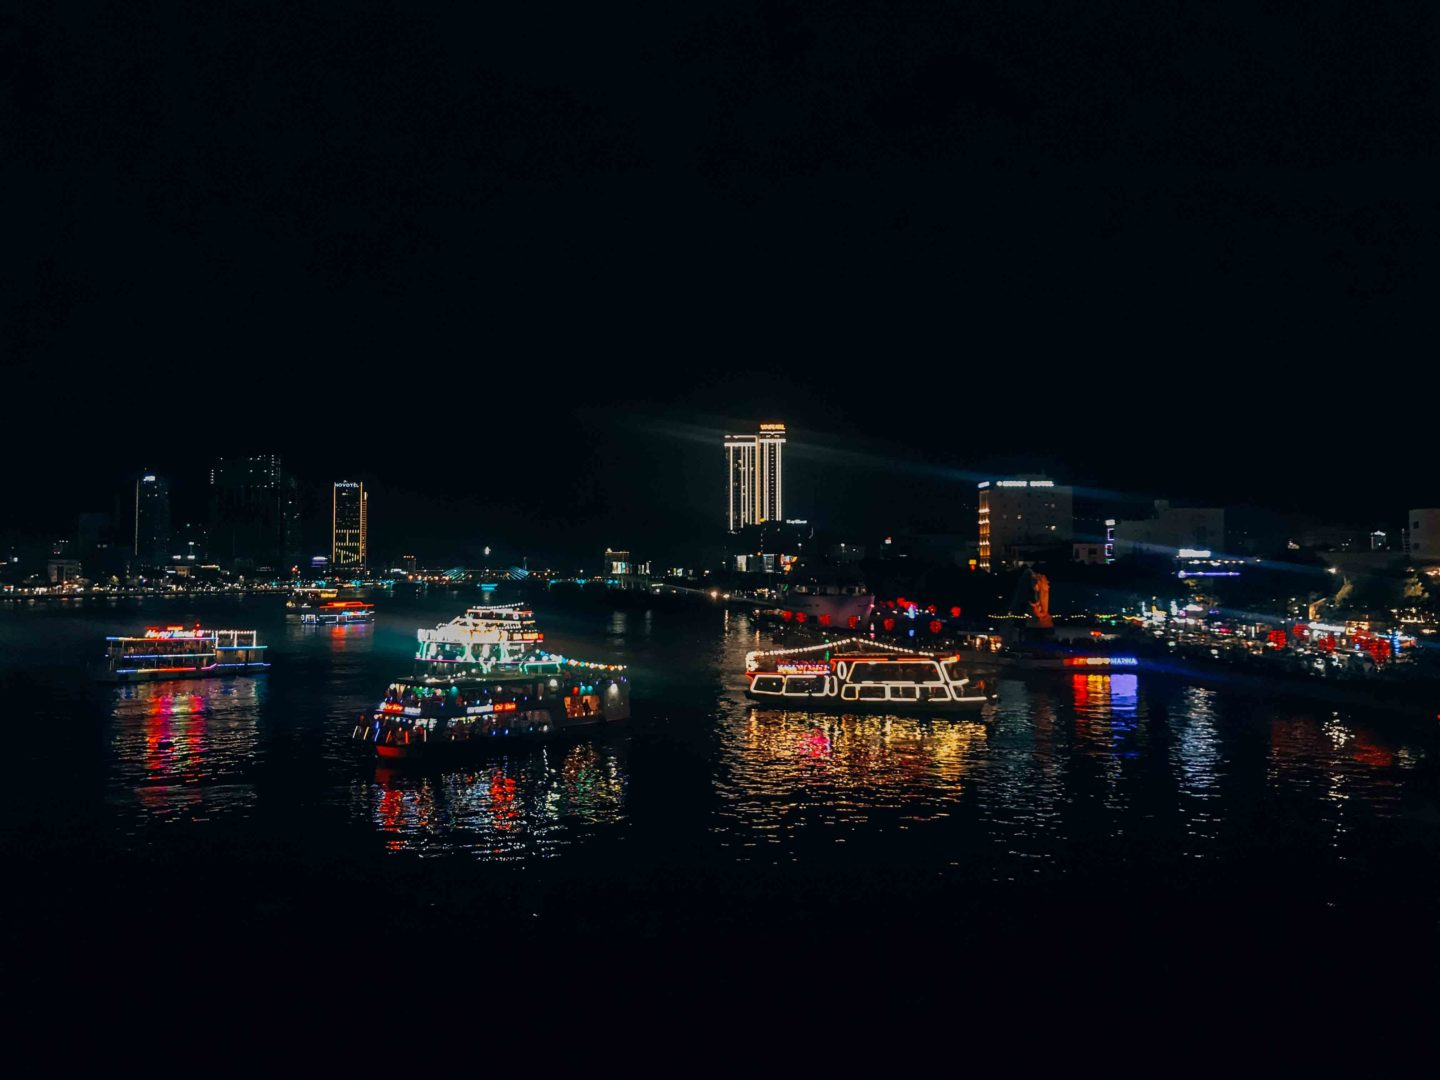 View on Han River from the Dragon Bridge by night, in Da Nang